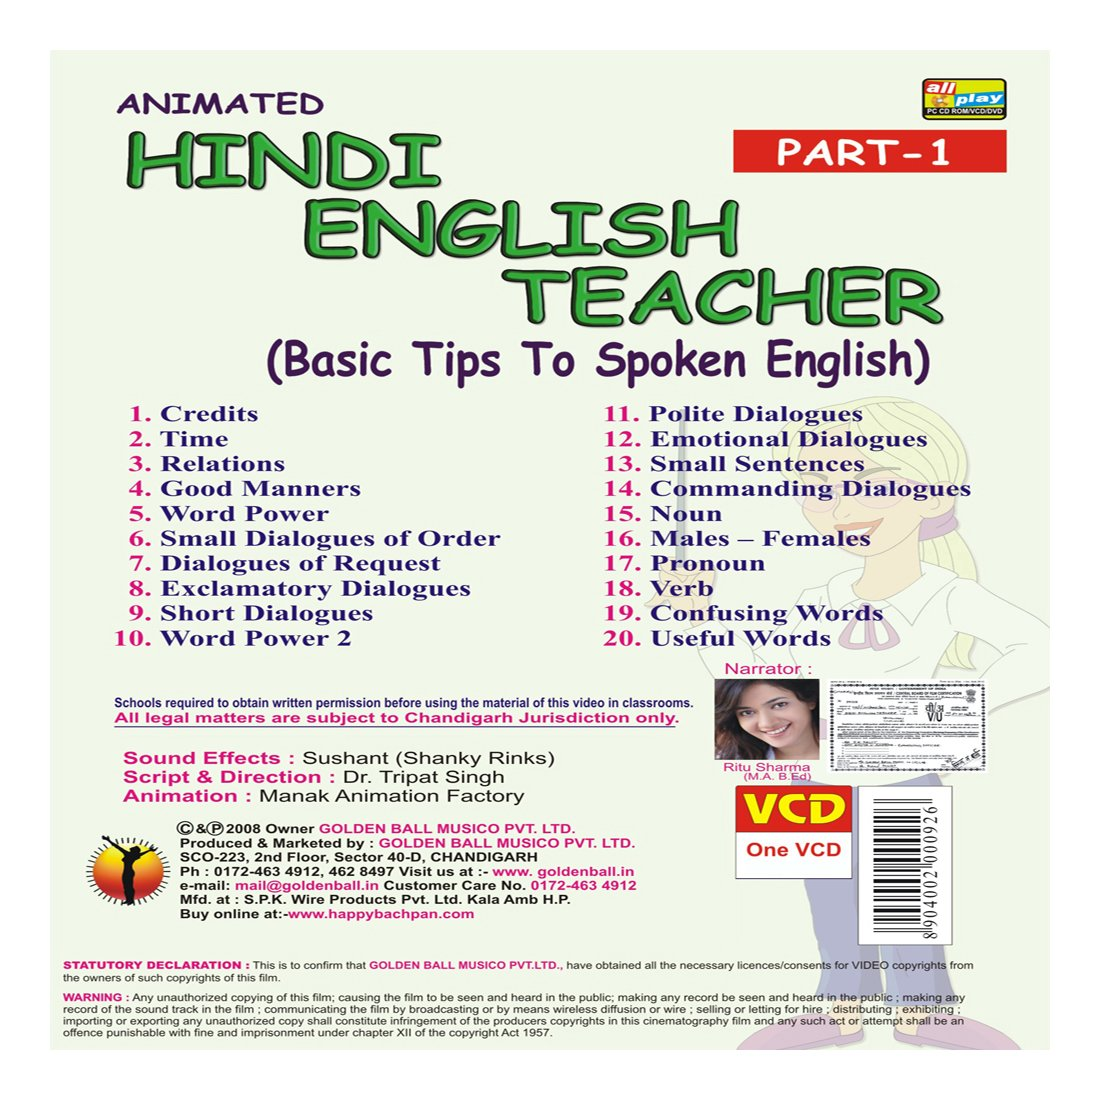 Buy Golden Ball Hindi English Teacher Part 1 Vcd Dvd House Wiring Tips In Blu Ray Online At Best Prices India Movies Tv Shows